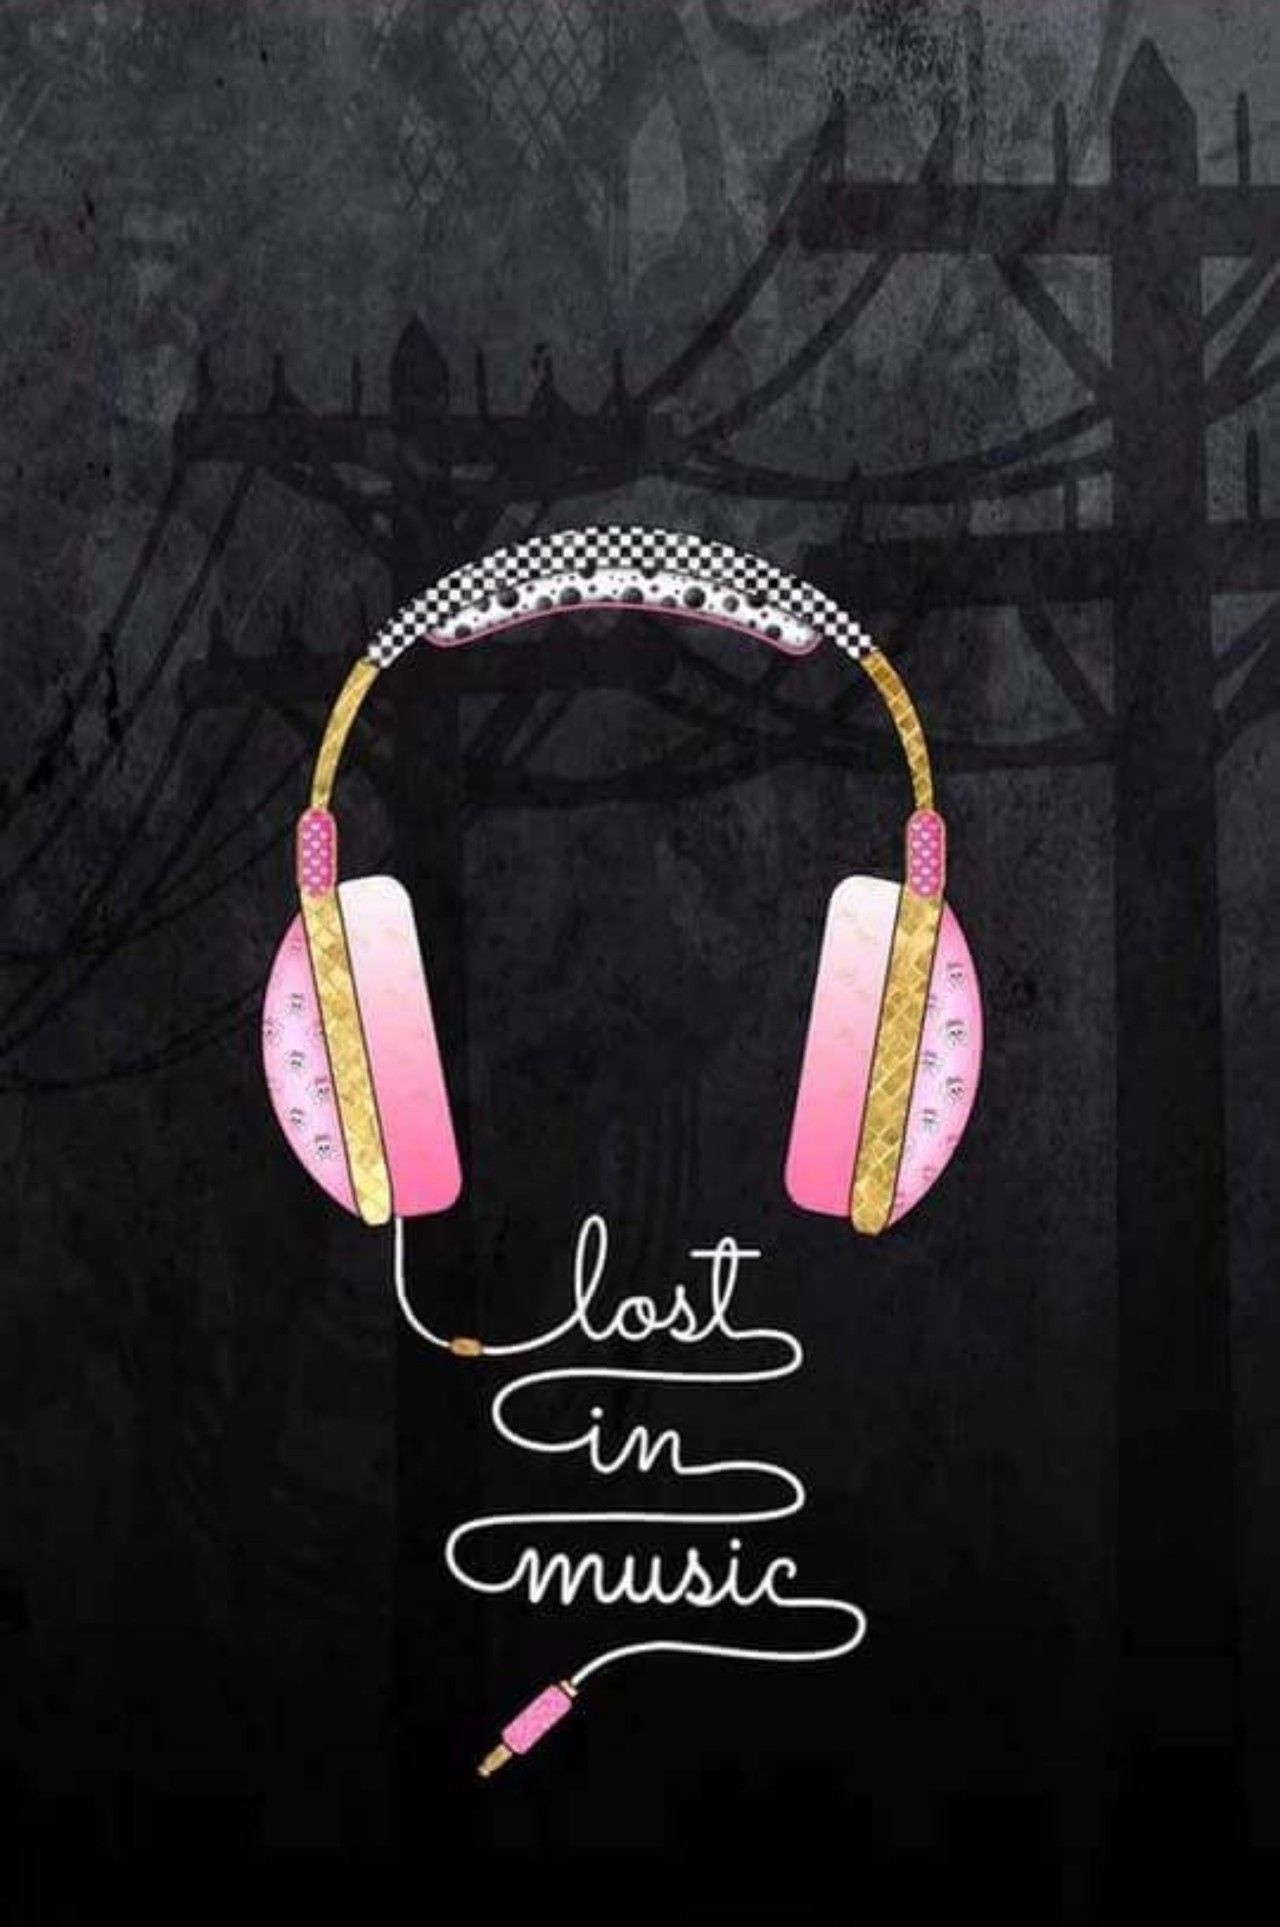 Pin By What Would On My Life Story Music Wallpaper Iphone